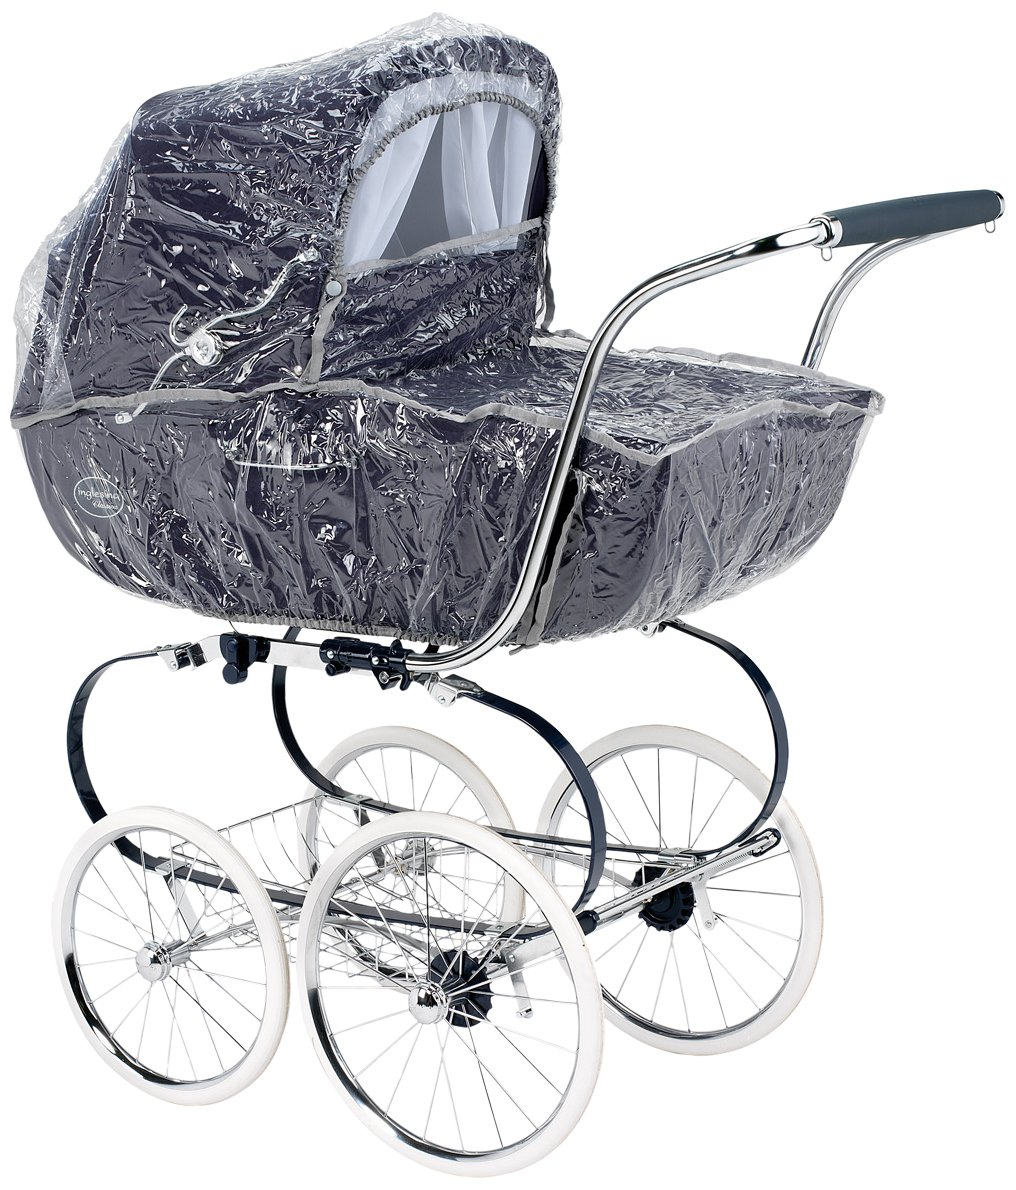 Inglesina Classica Pram and Zippy Bassinet Raincover